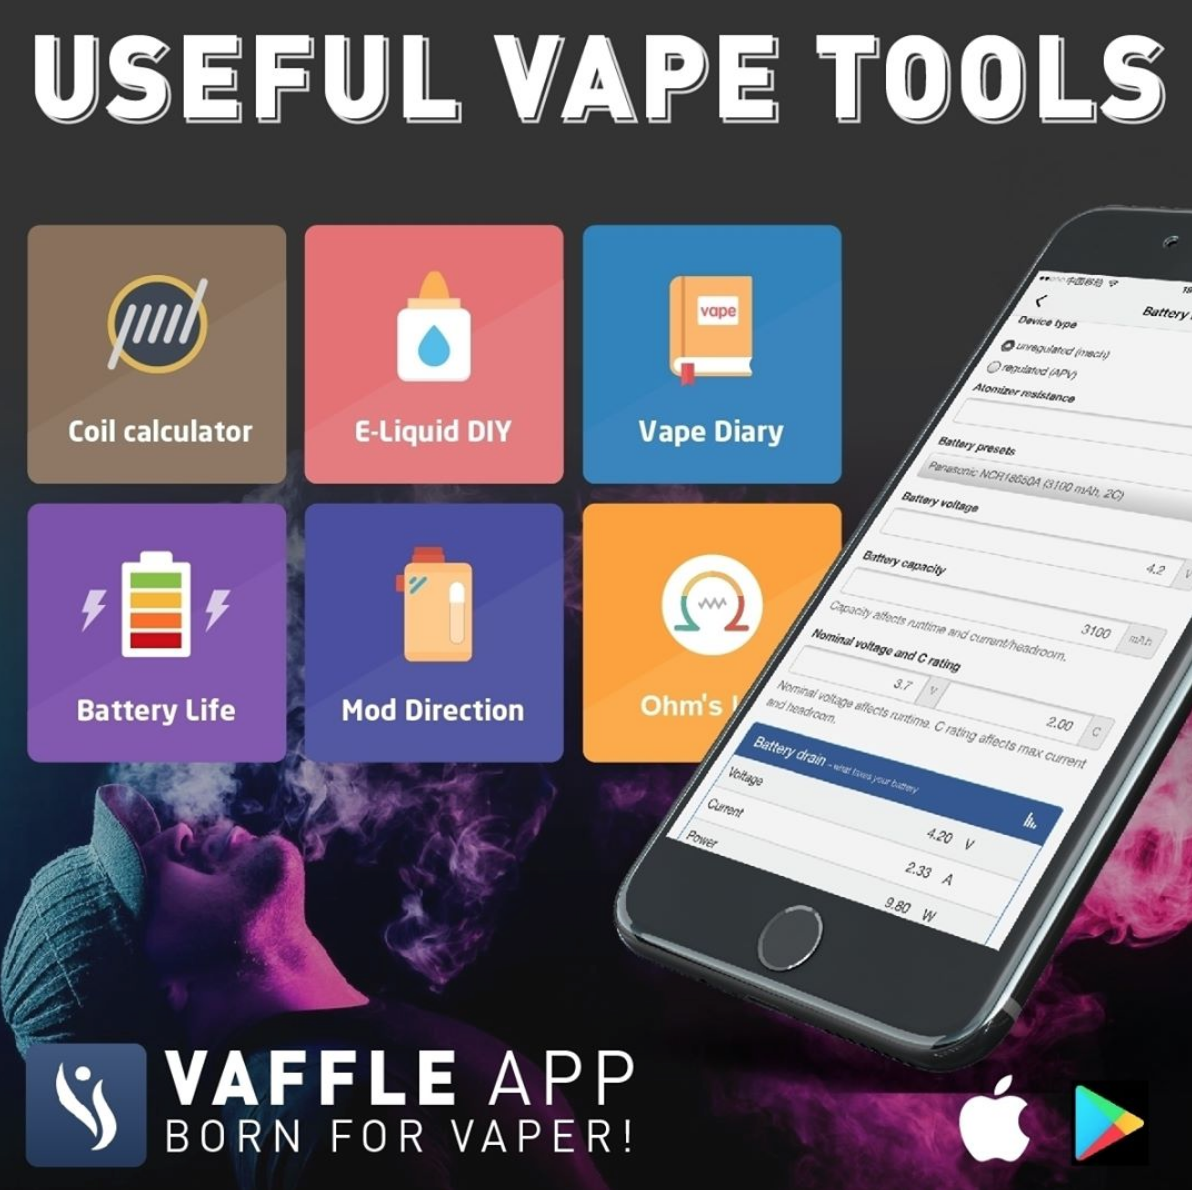 Vaffle - The Ultimate Phone App For Vapers